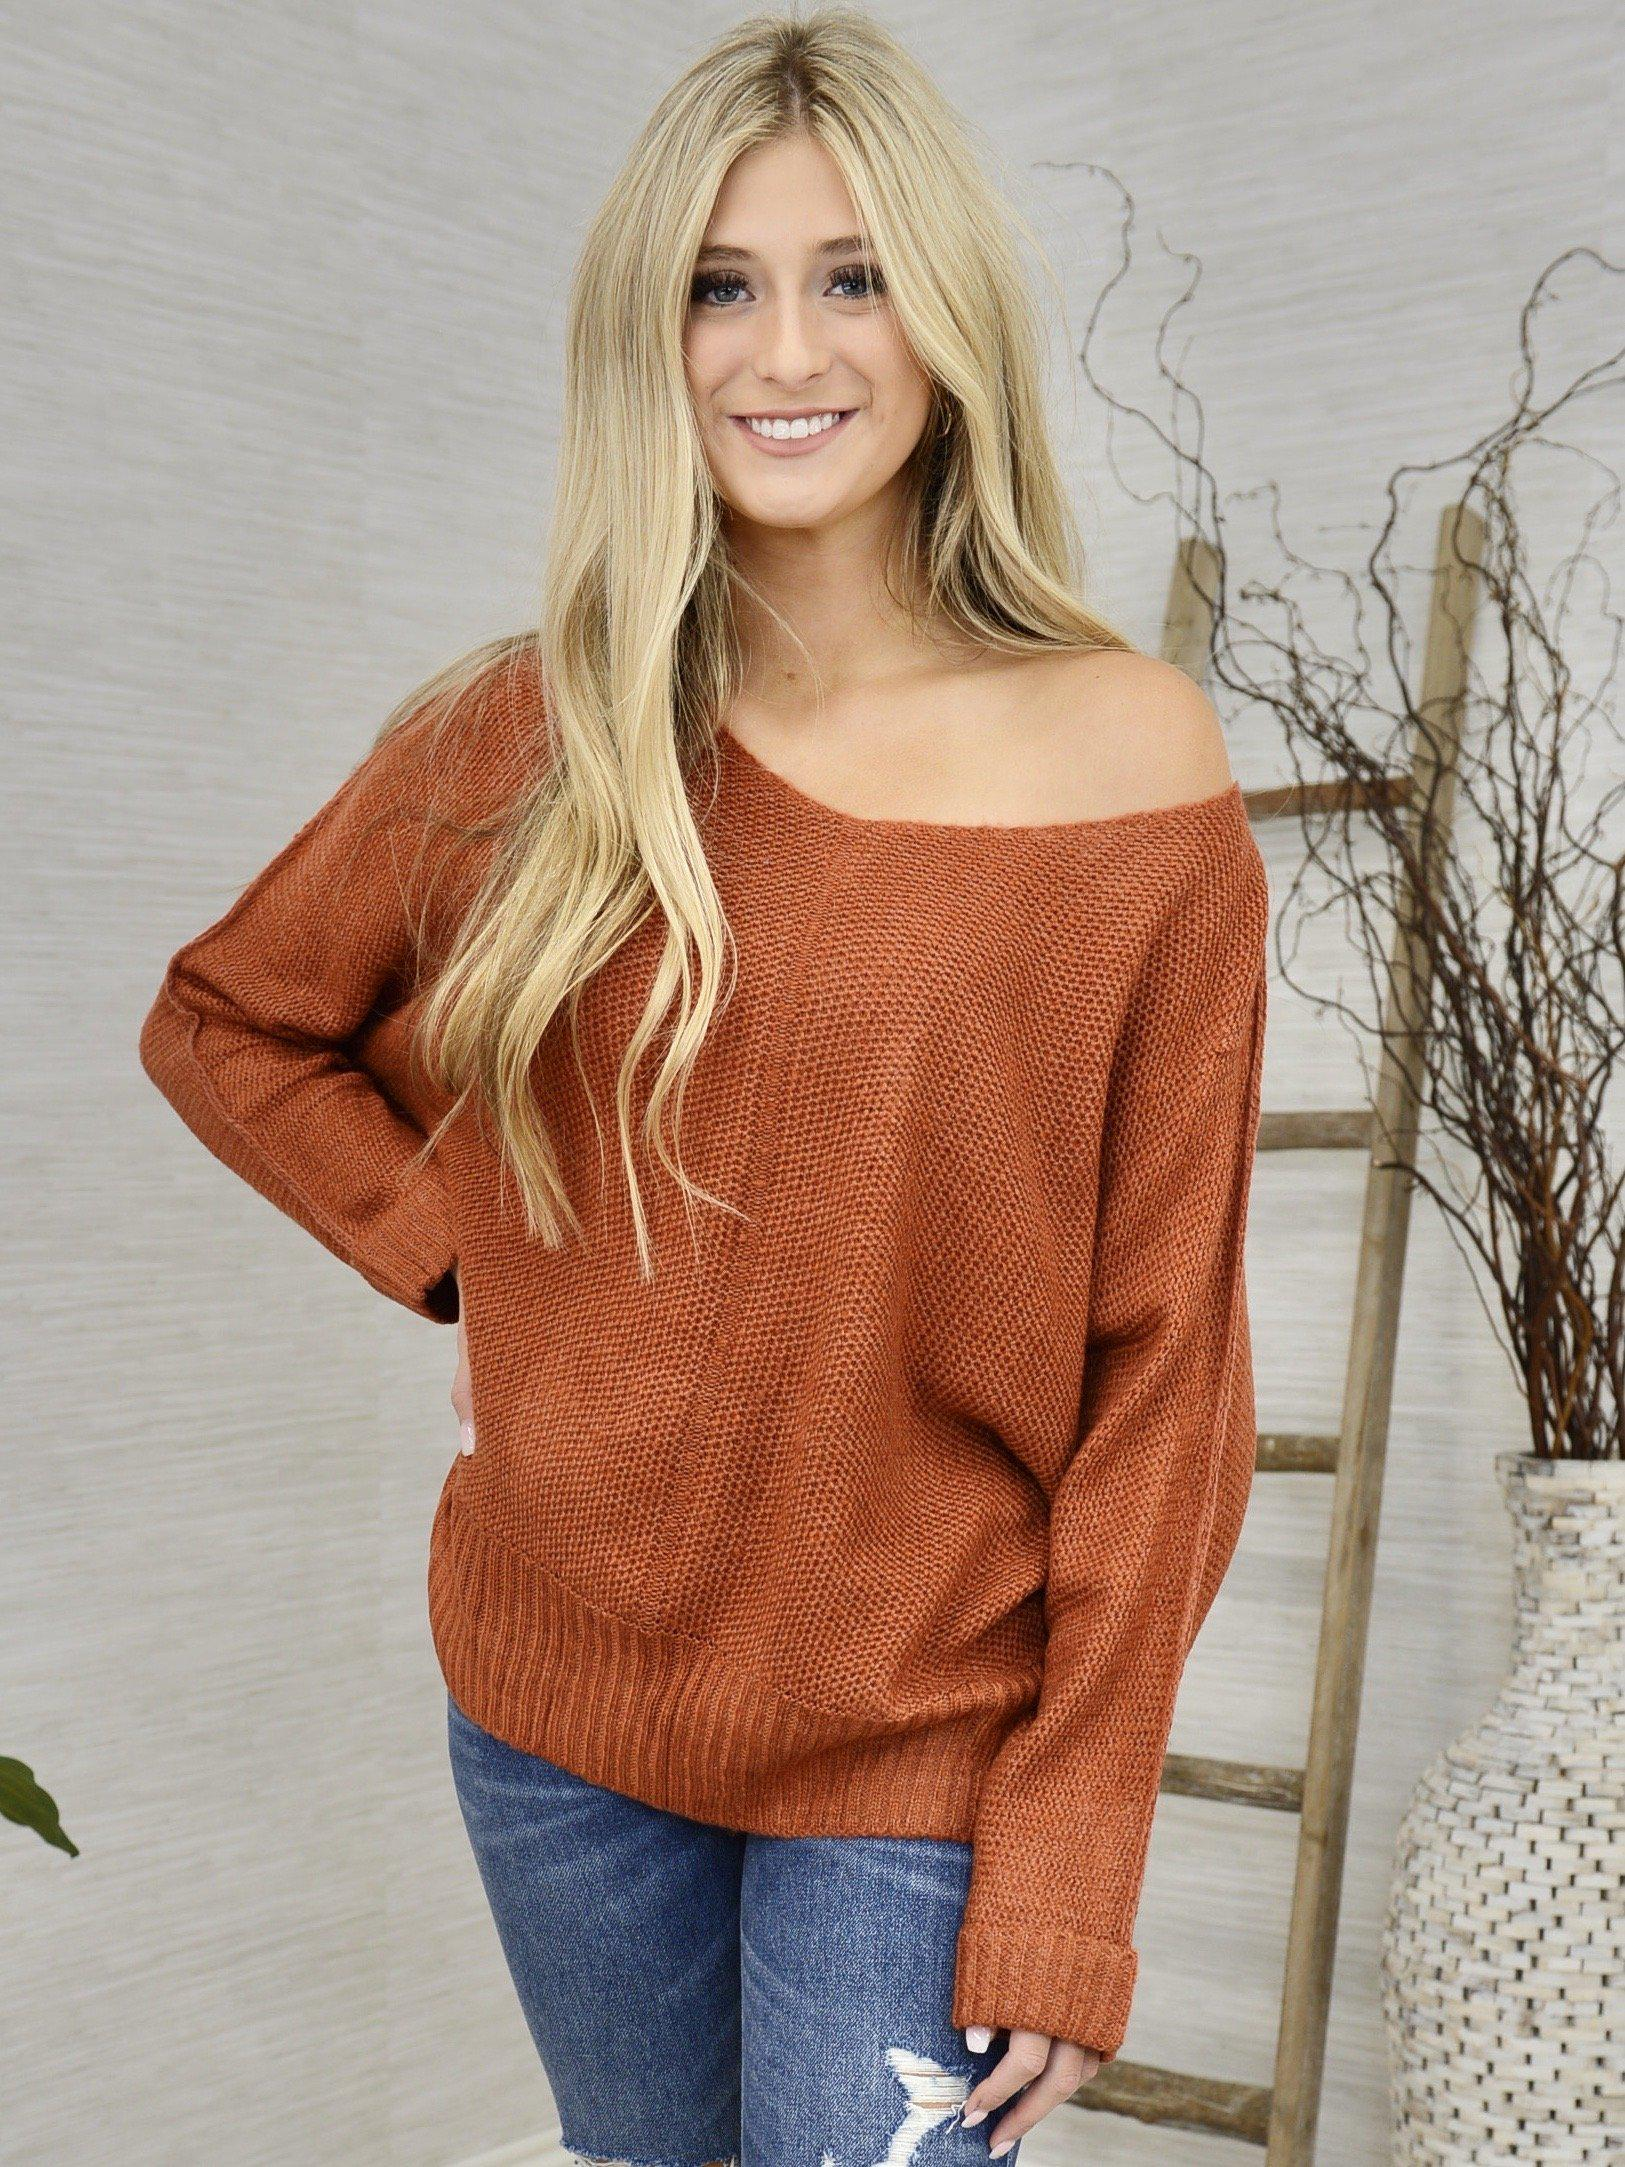 Brick by Brick Sweater-Women's -New Arrivals-Runway Seven